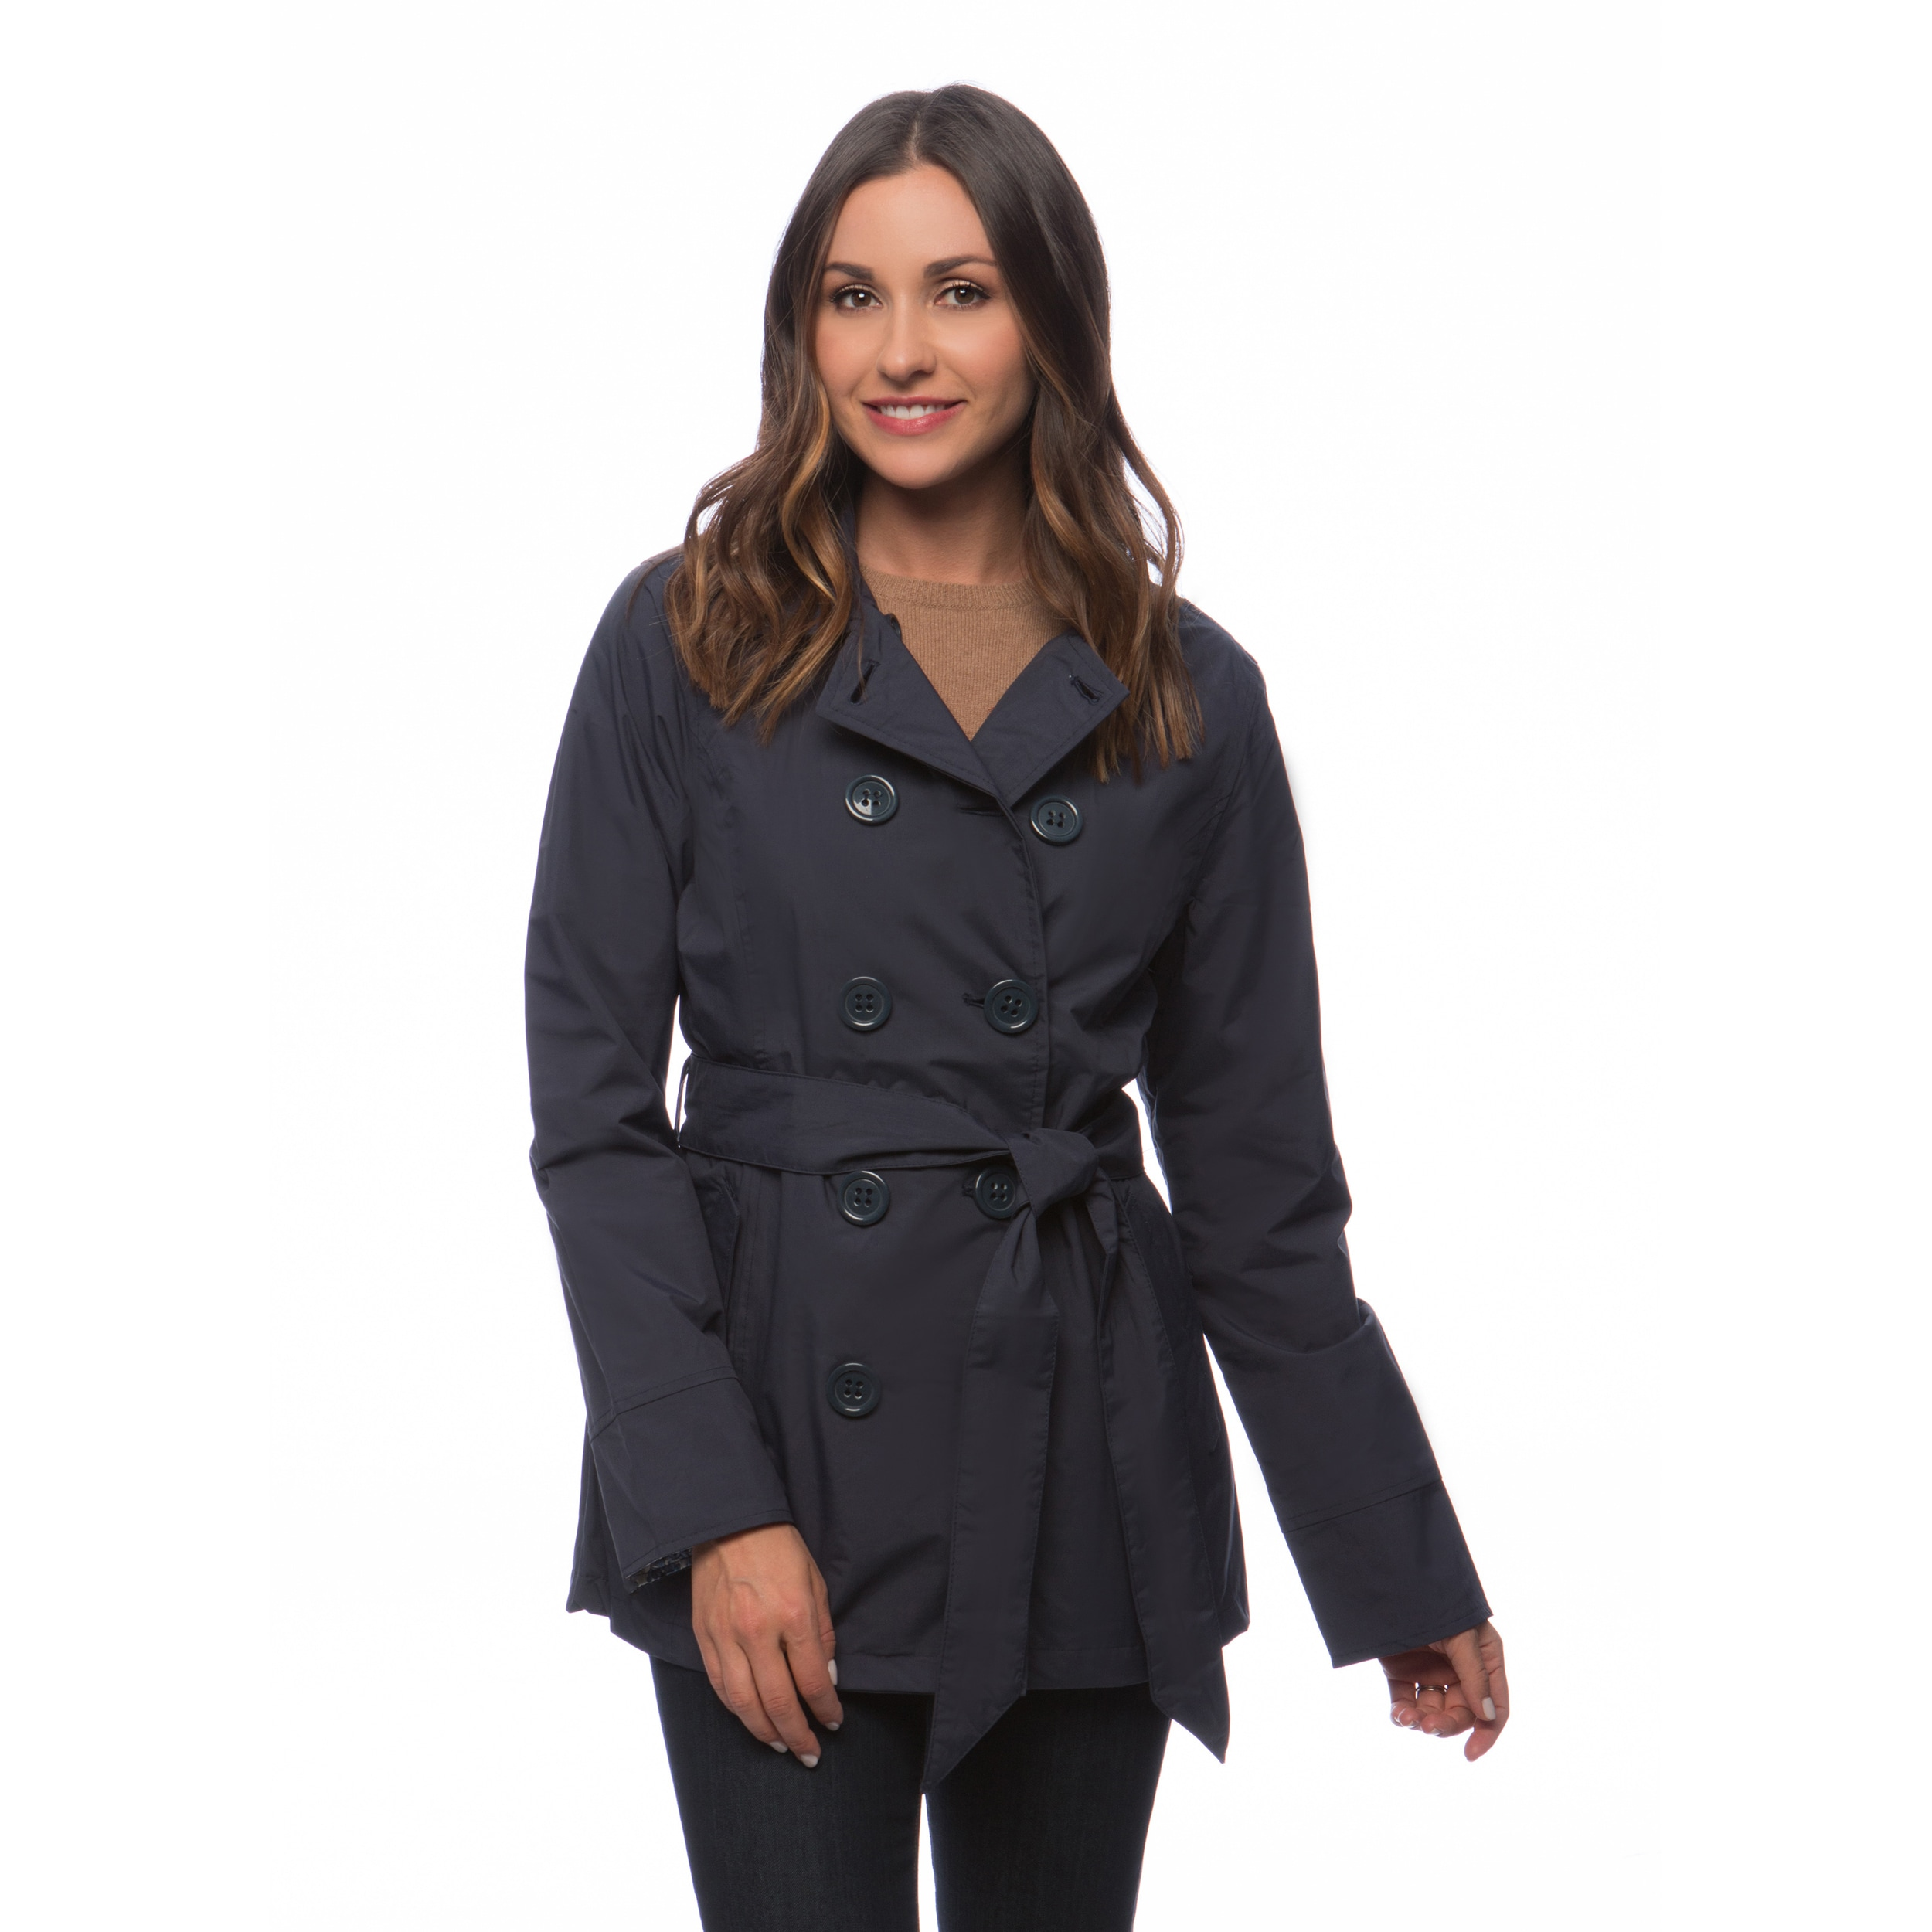 057f239f5781 Shop Happy Rainy Days Women's Double-breasted Notched Lapel Short Trench  Coat - Free Shipping On Orders Over $45 - Overstock - 10261870